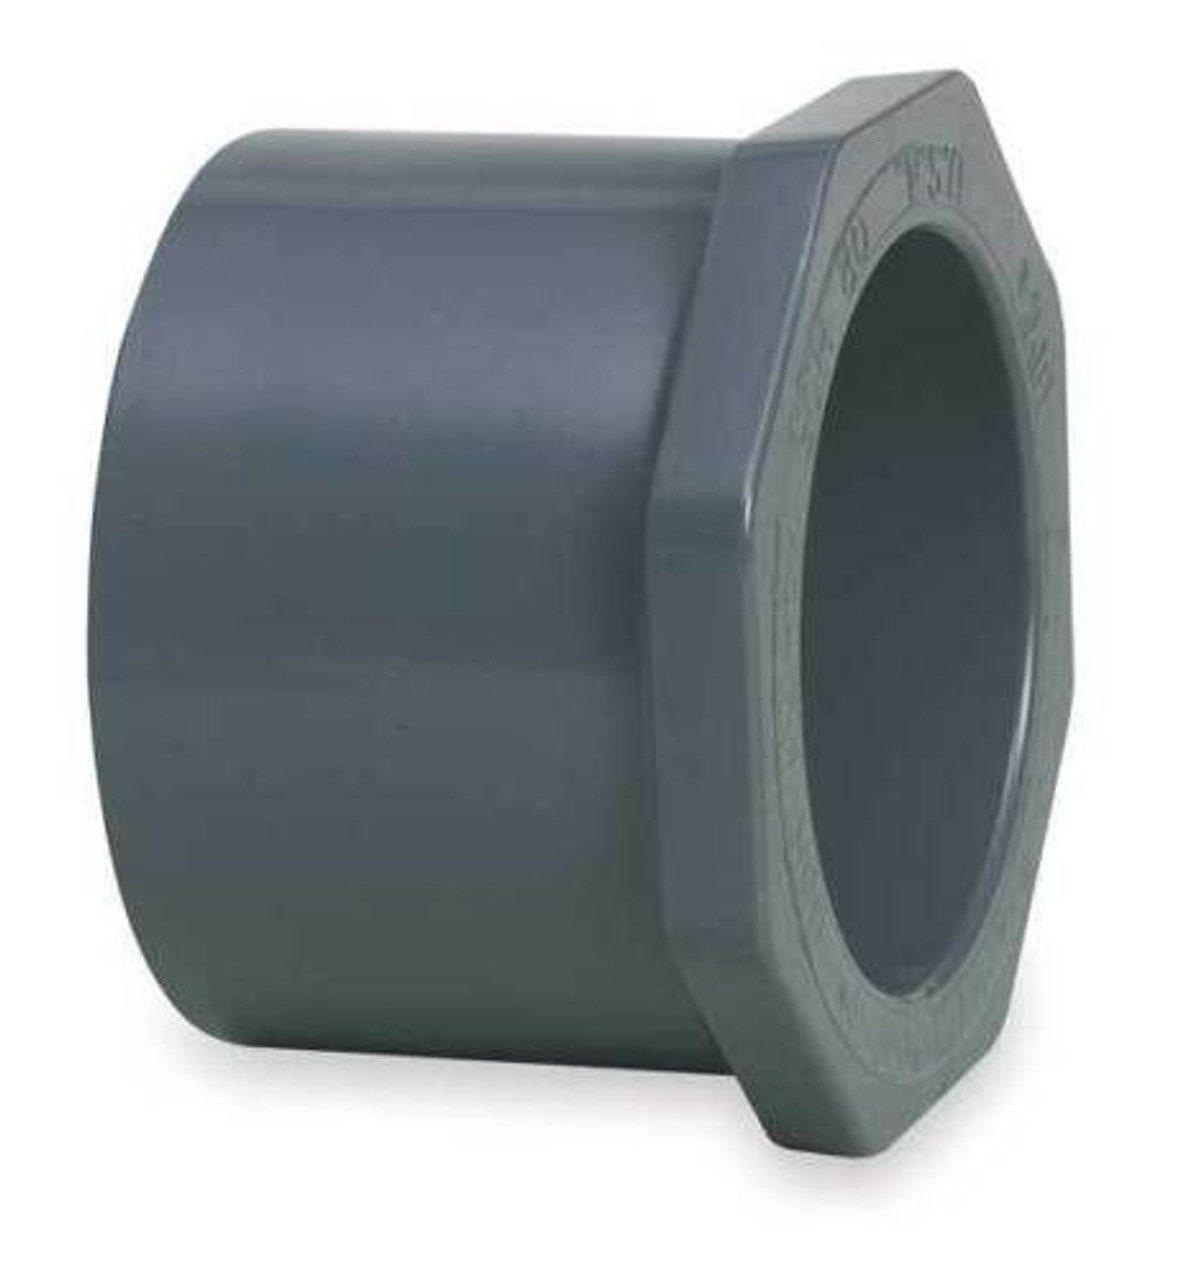 "+GF+ | 1-1/4"" x 1/2"" Reducer Bushing Flush Style"